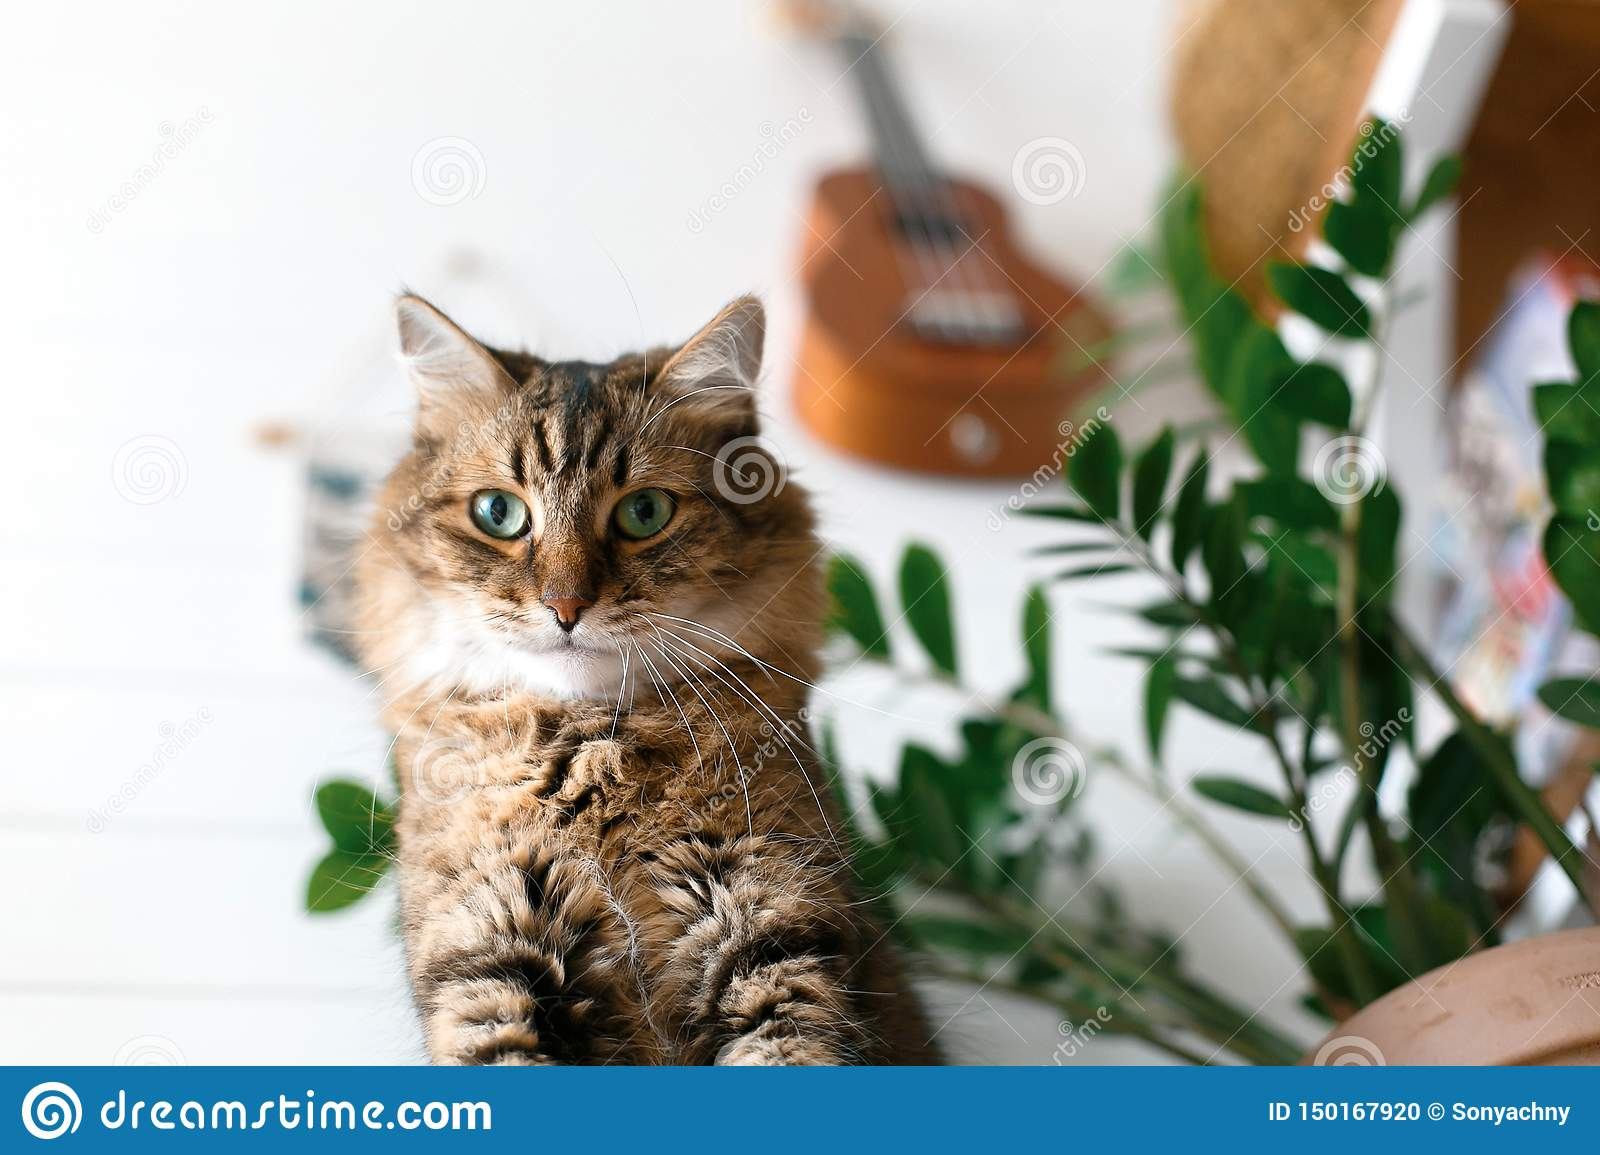 Maine coon with green eyes looking with funny emotions at zamioculcas leaves. Cute cat sitting under green plant branches on